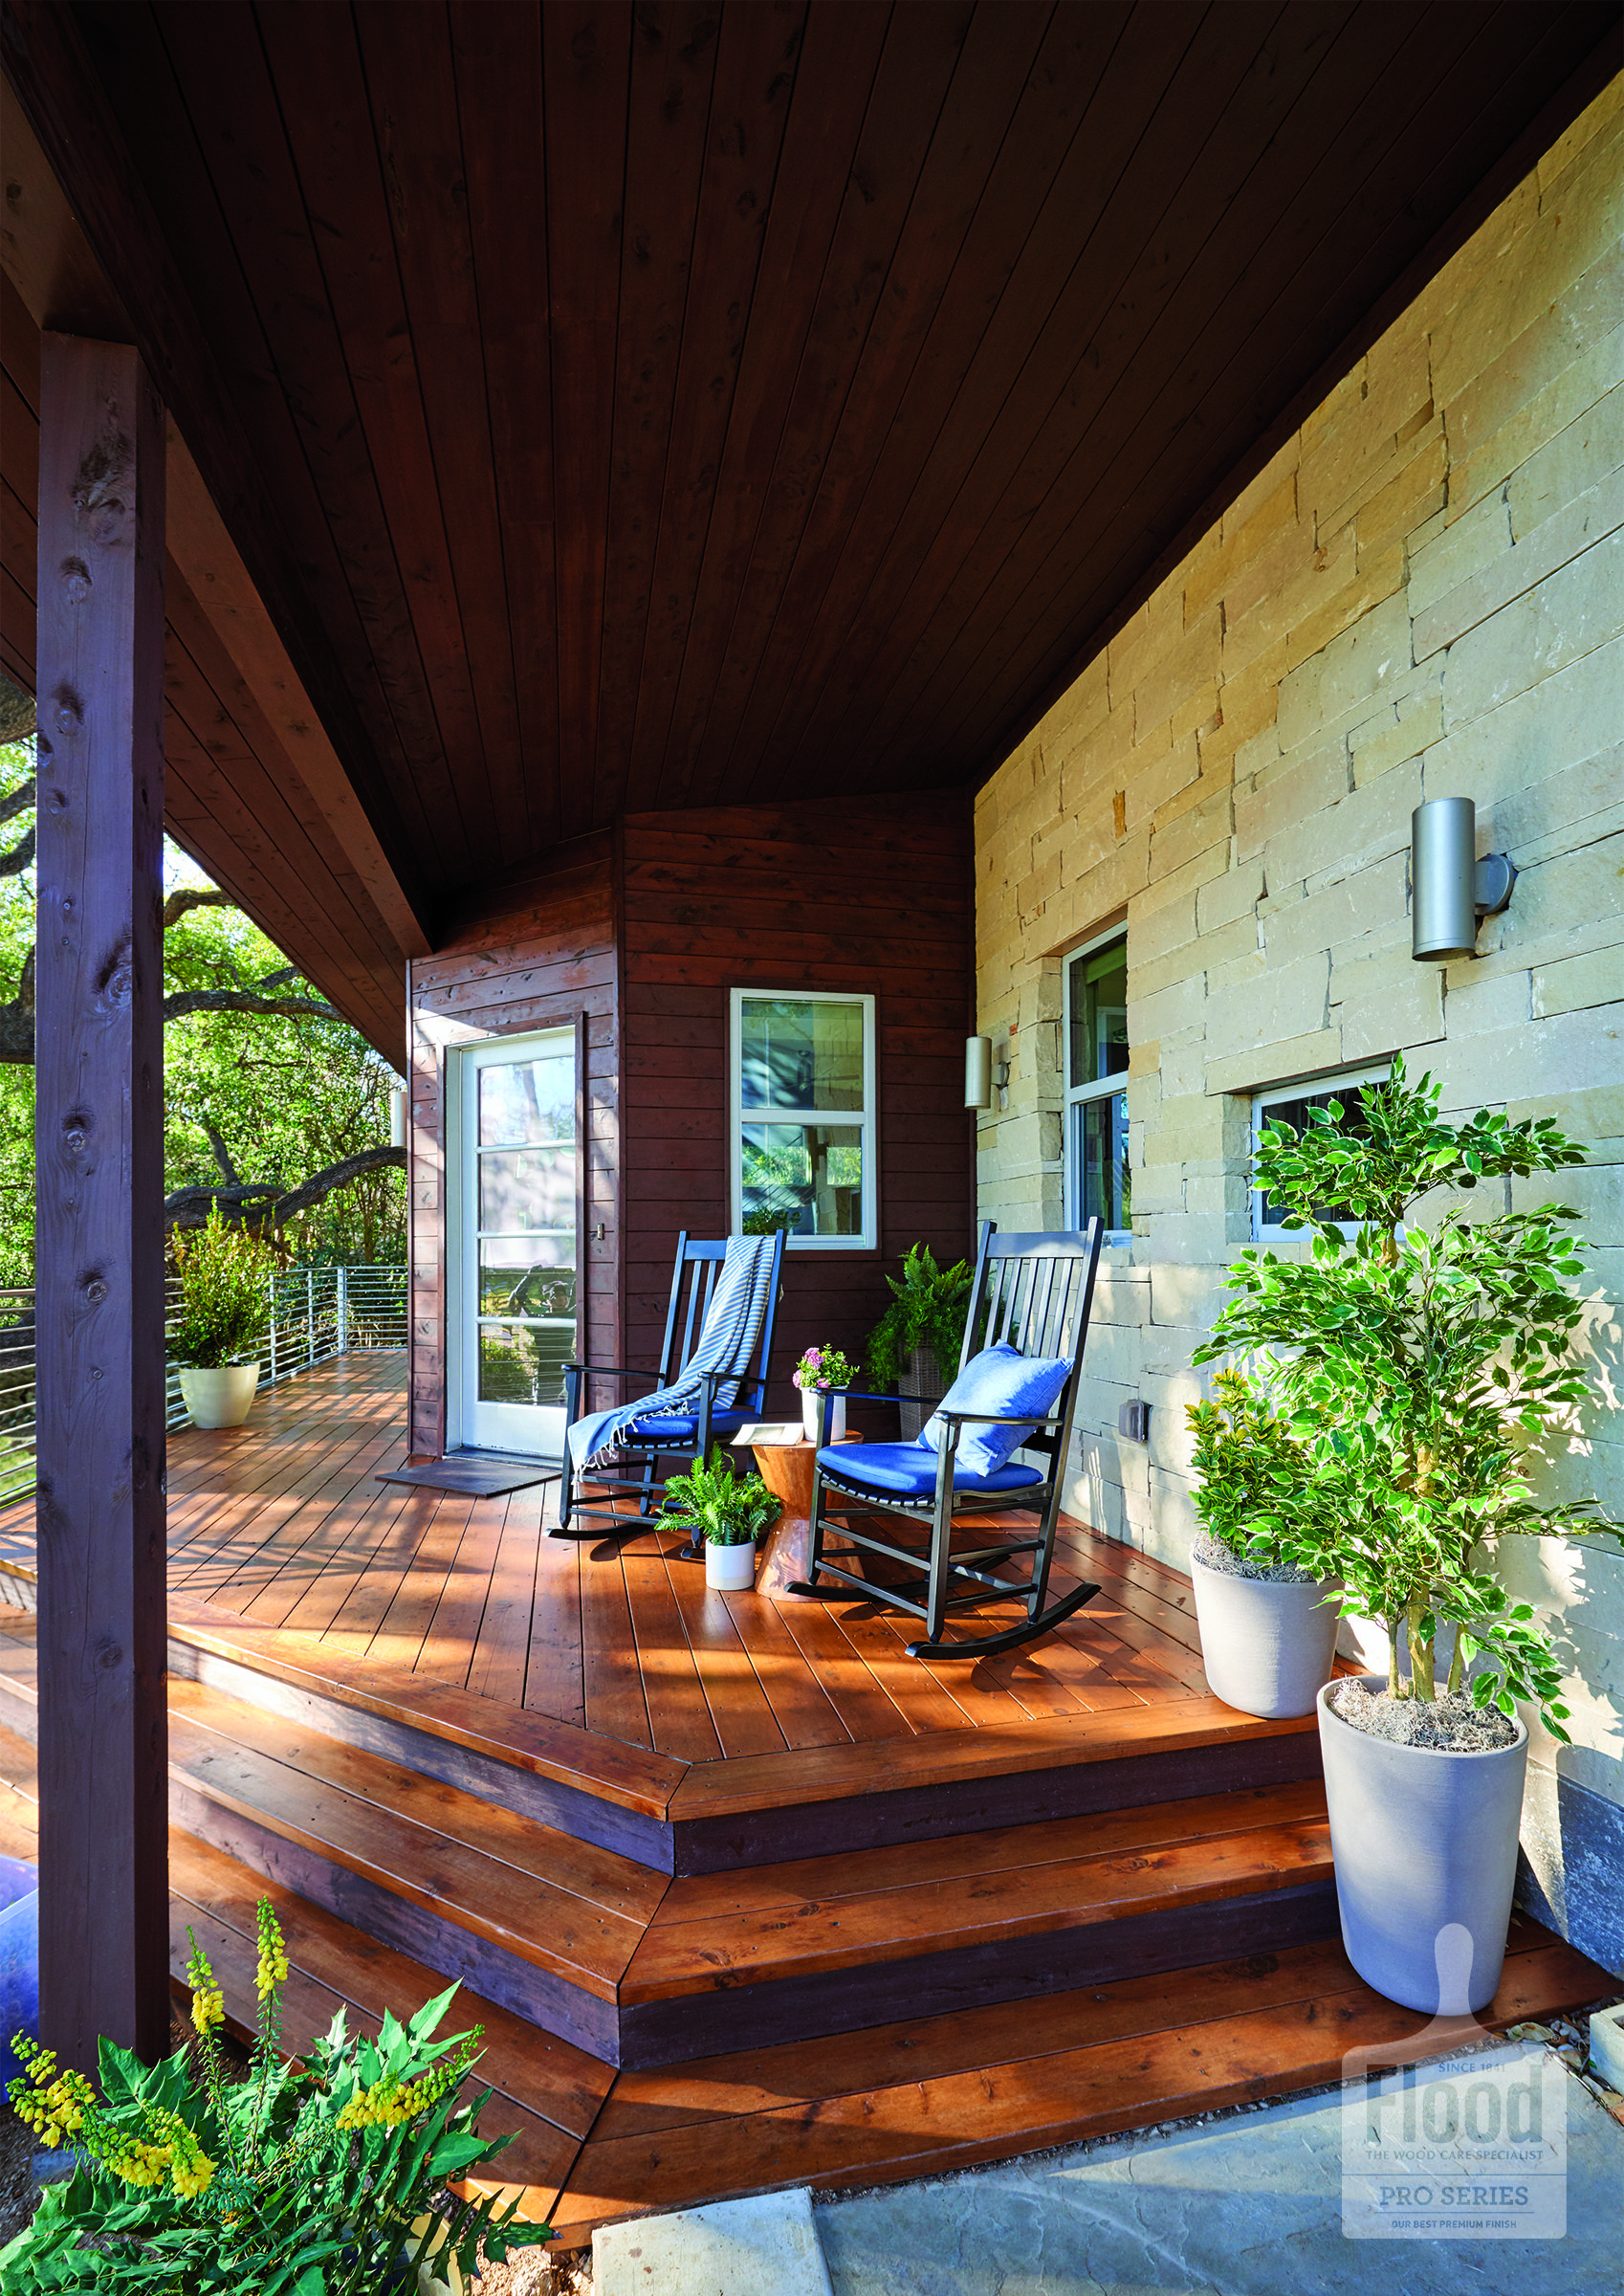 Consider Opening Up Your Front Porch With Wraparound Stairs Add A Warm Wood Finish To Make It Even More Inviting The Finish Shown Wood Finish Warm Wood Patio